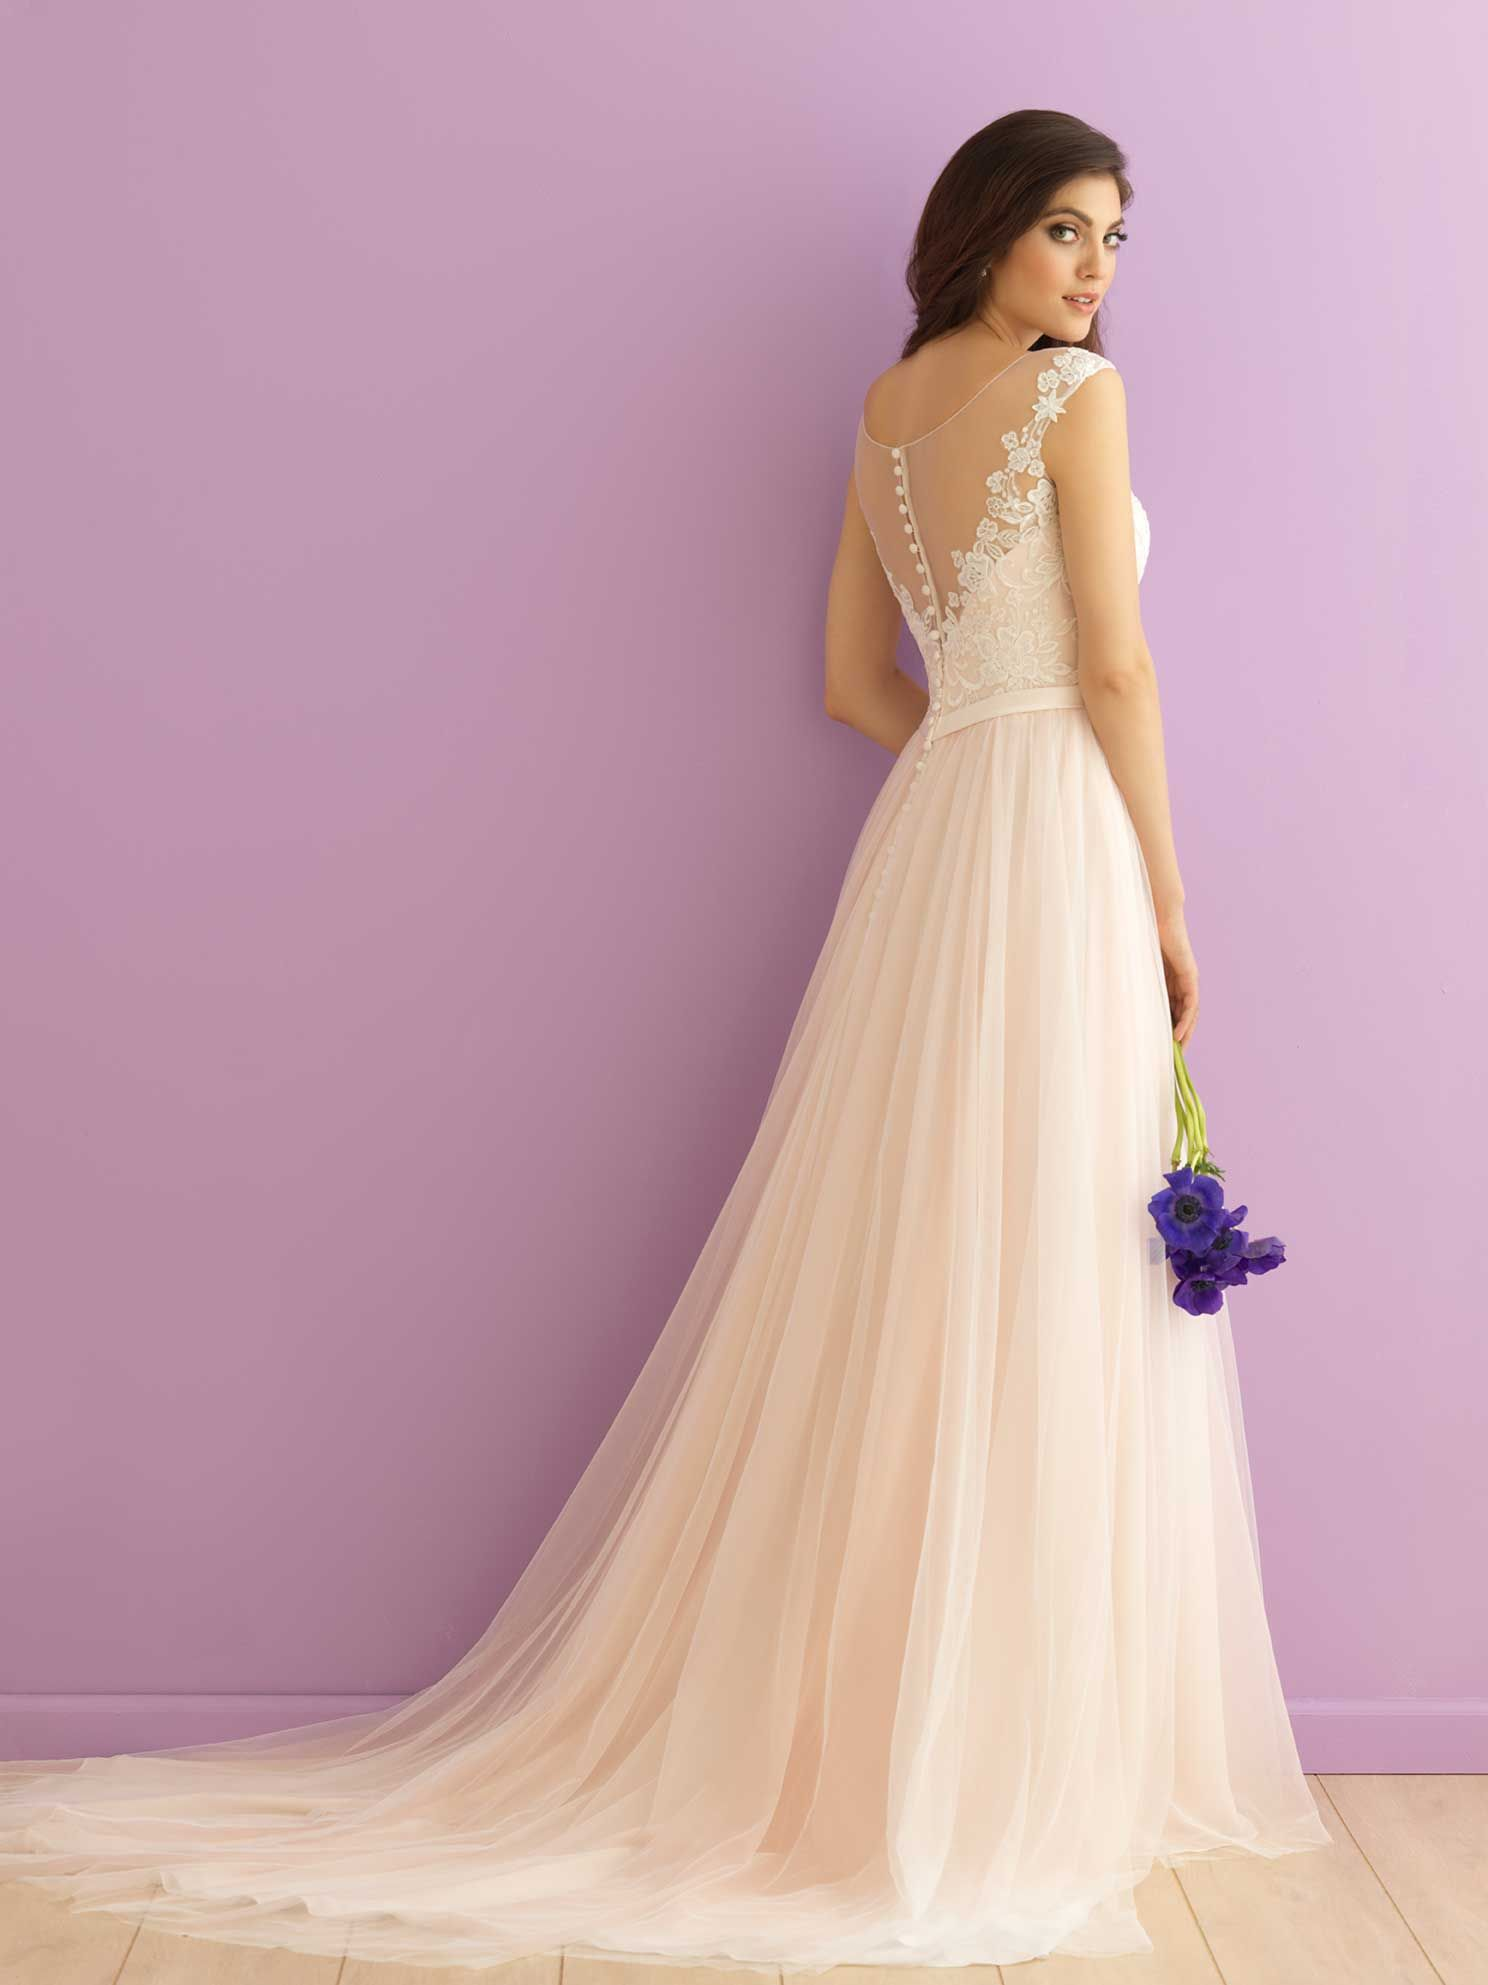 http://www.bridalextraordinaire.com/ allure romance collection ...